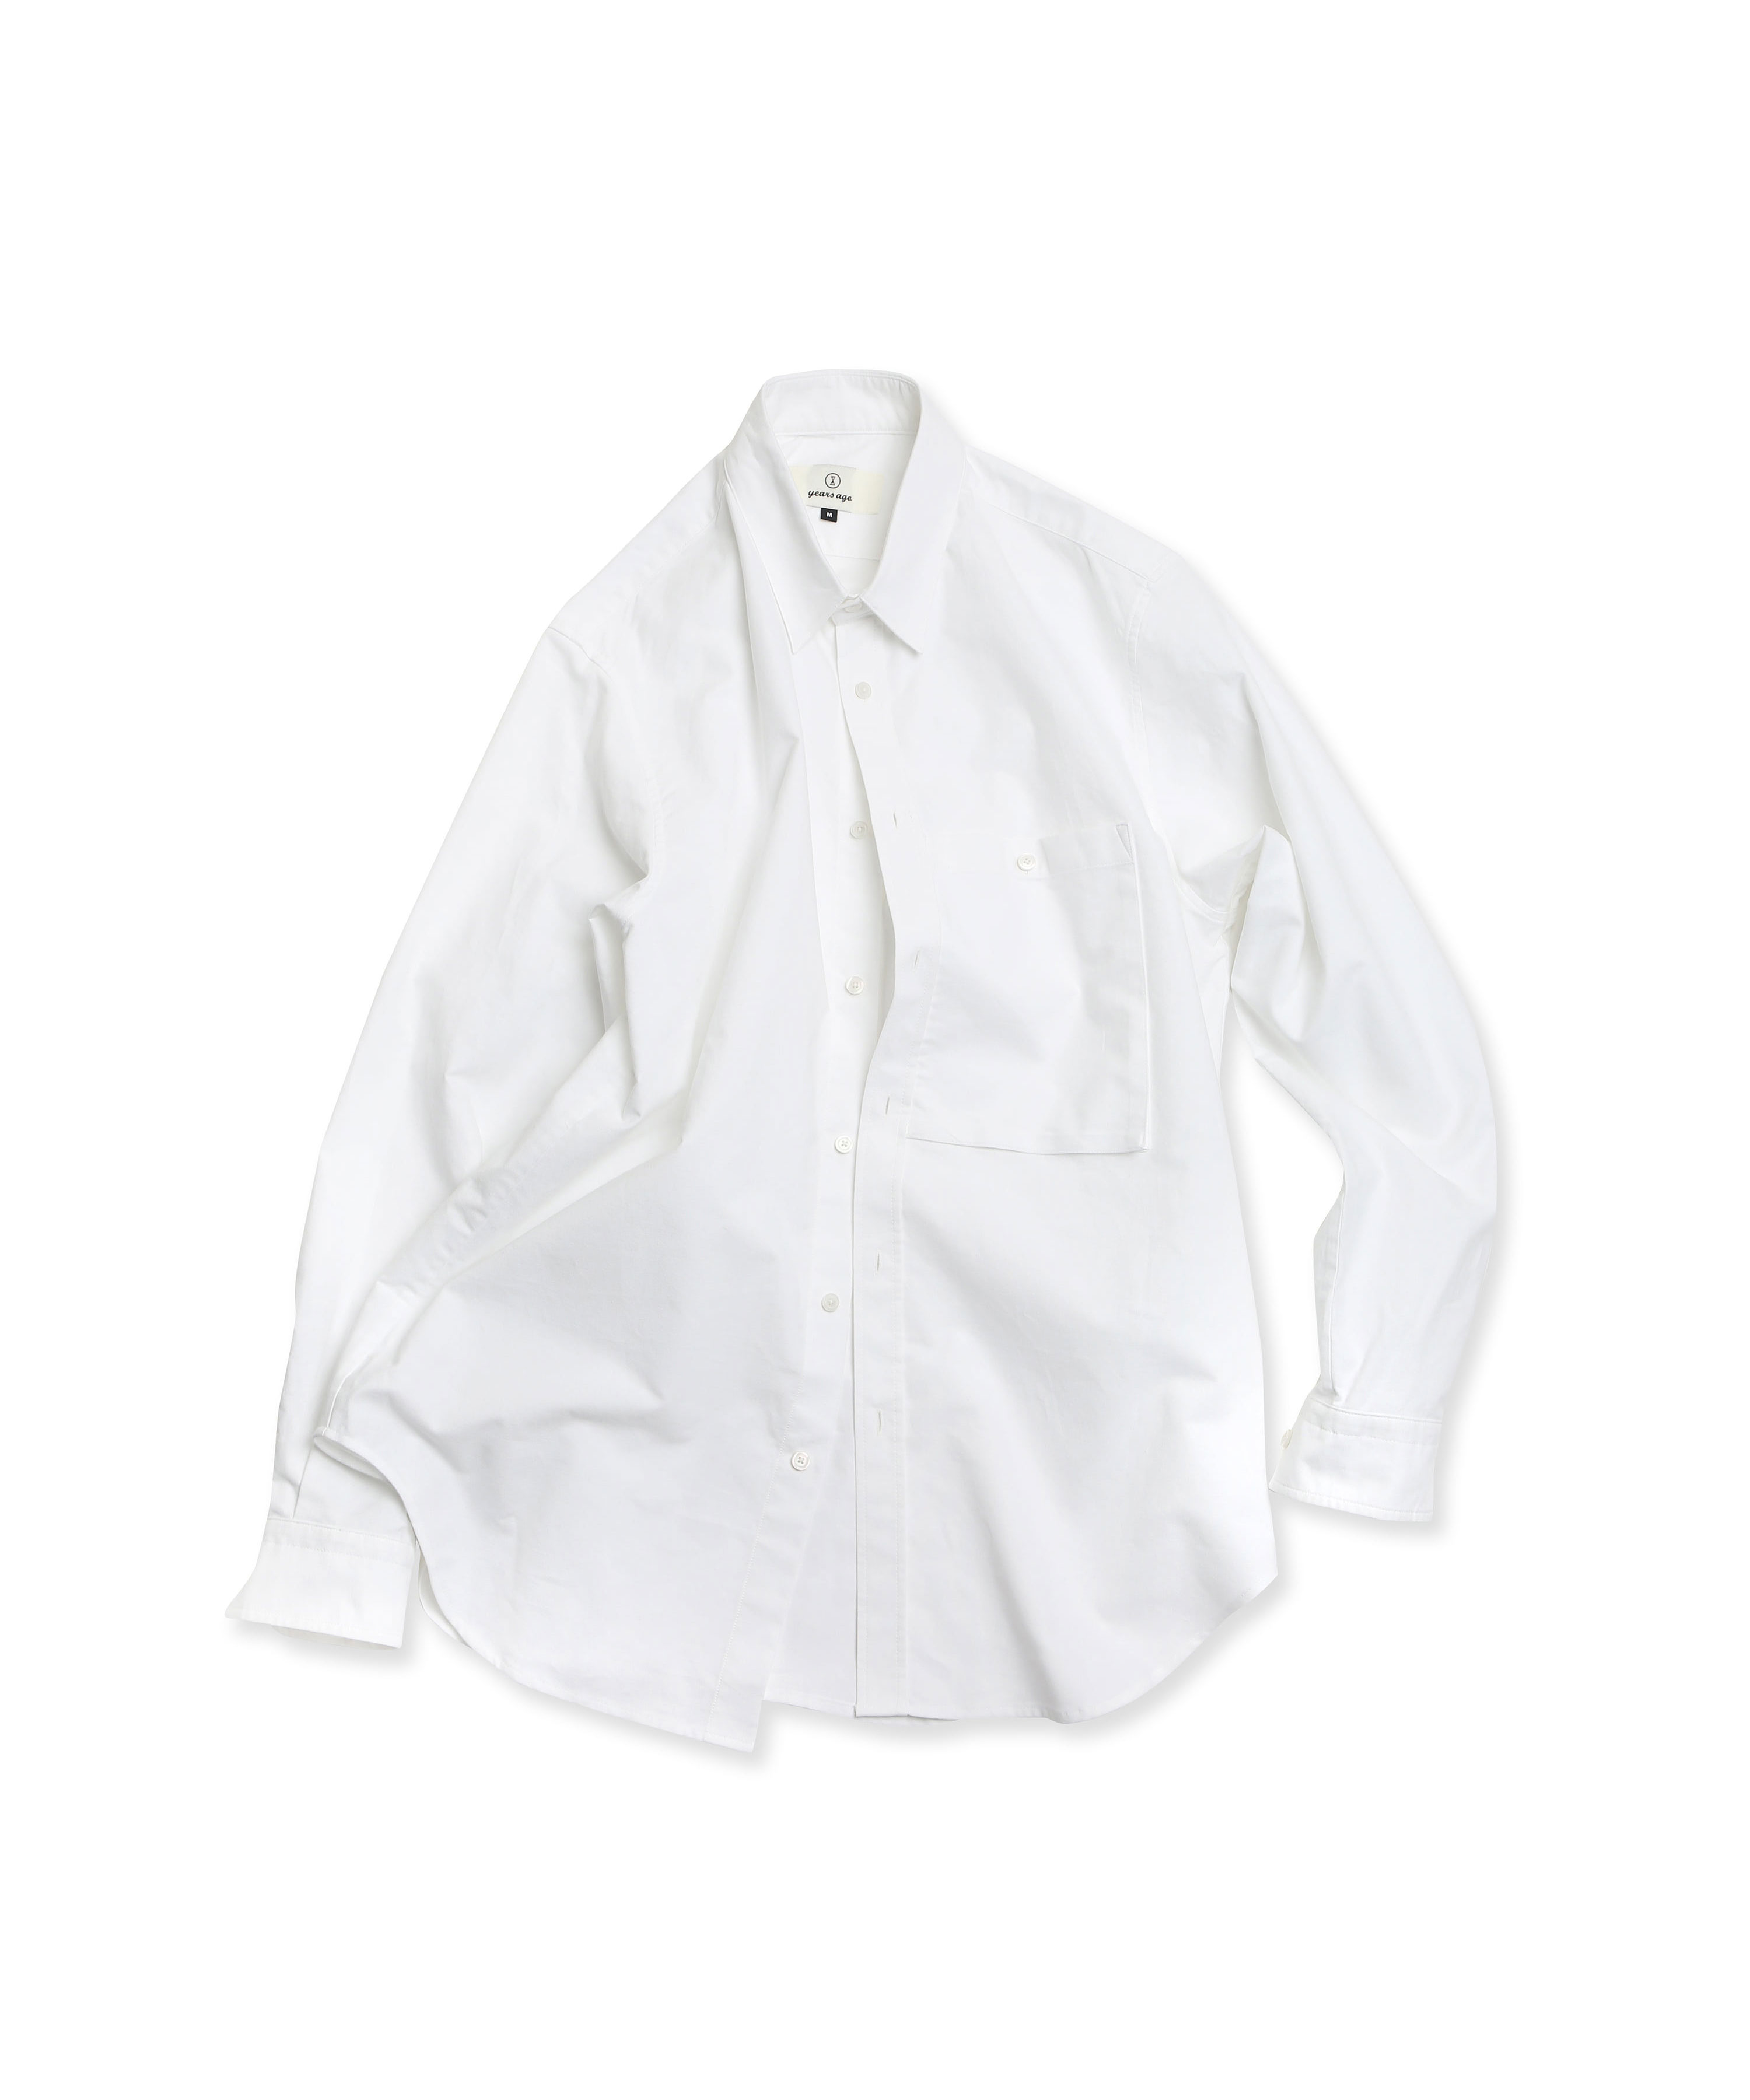 WHITE BIG POCKET OXFORD SHIRTS